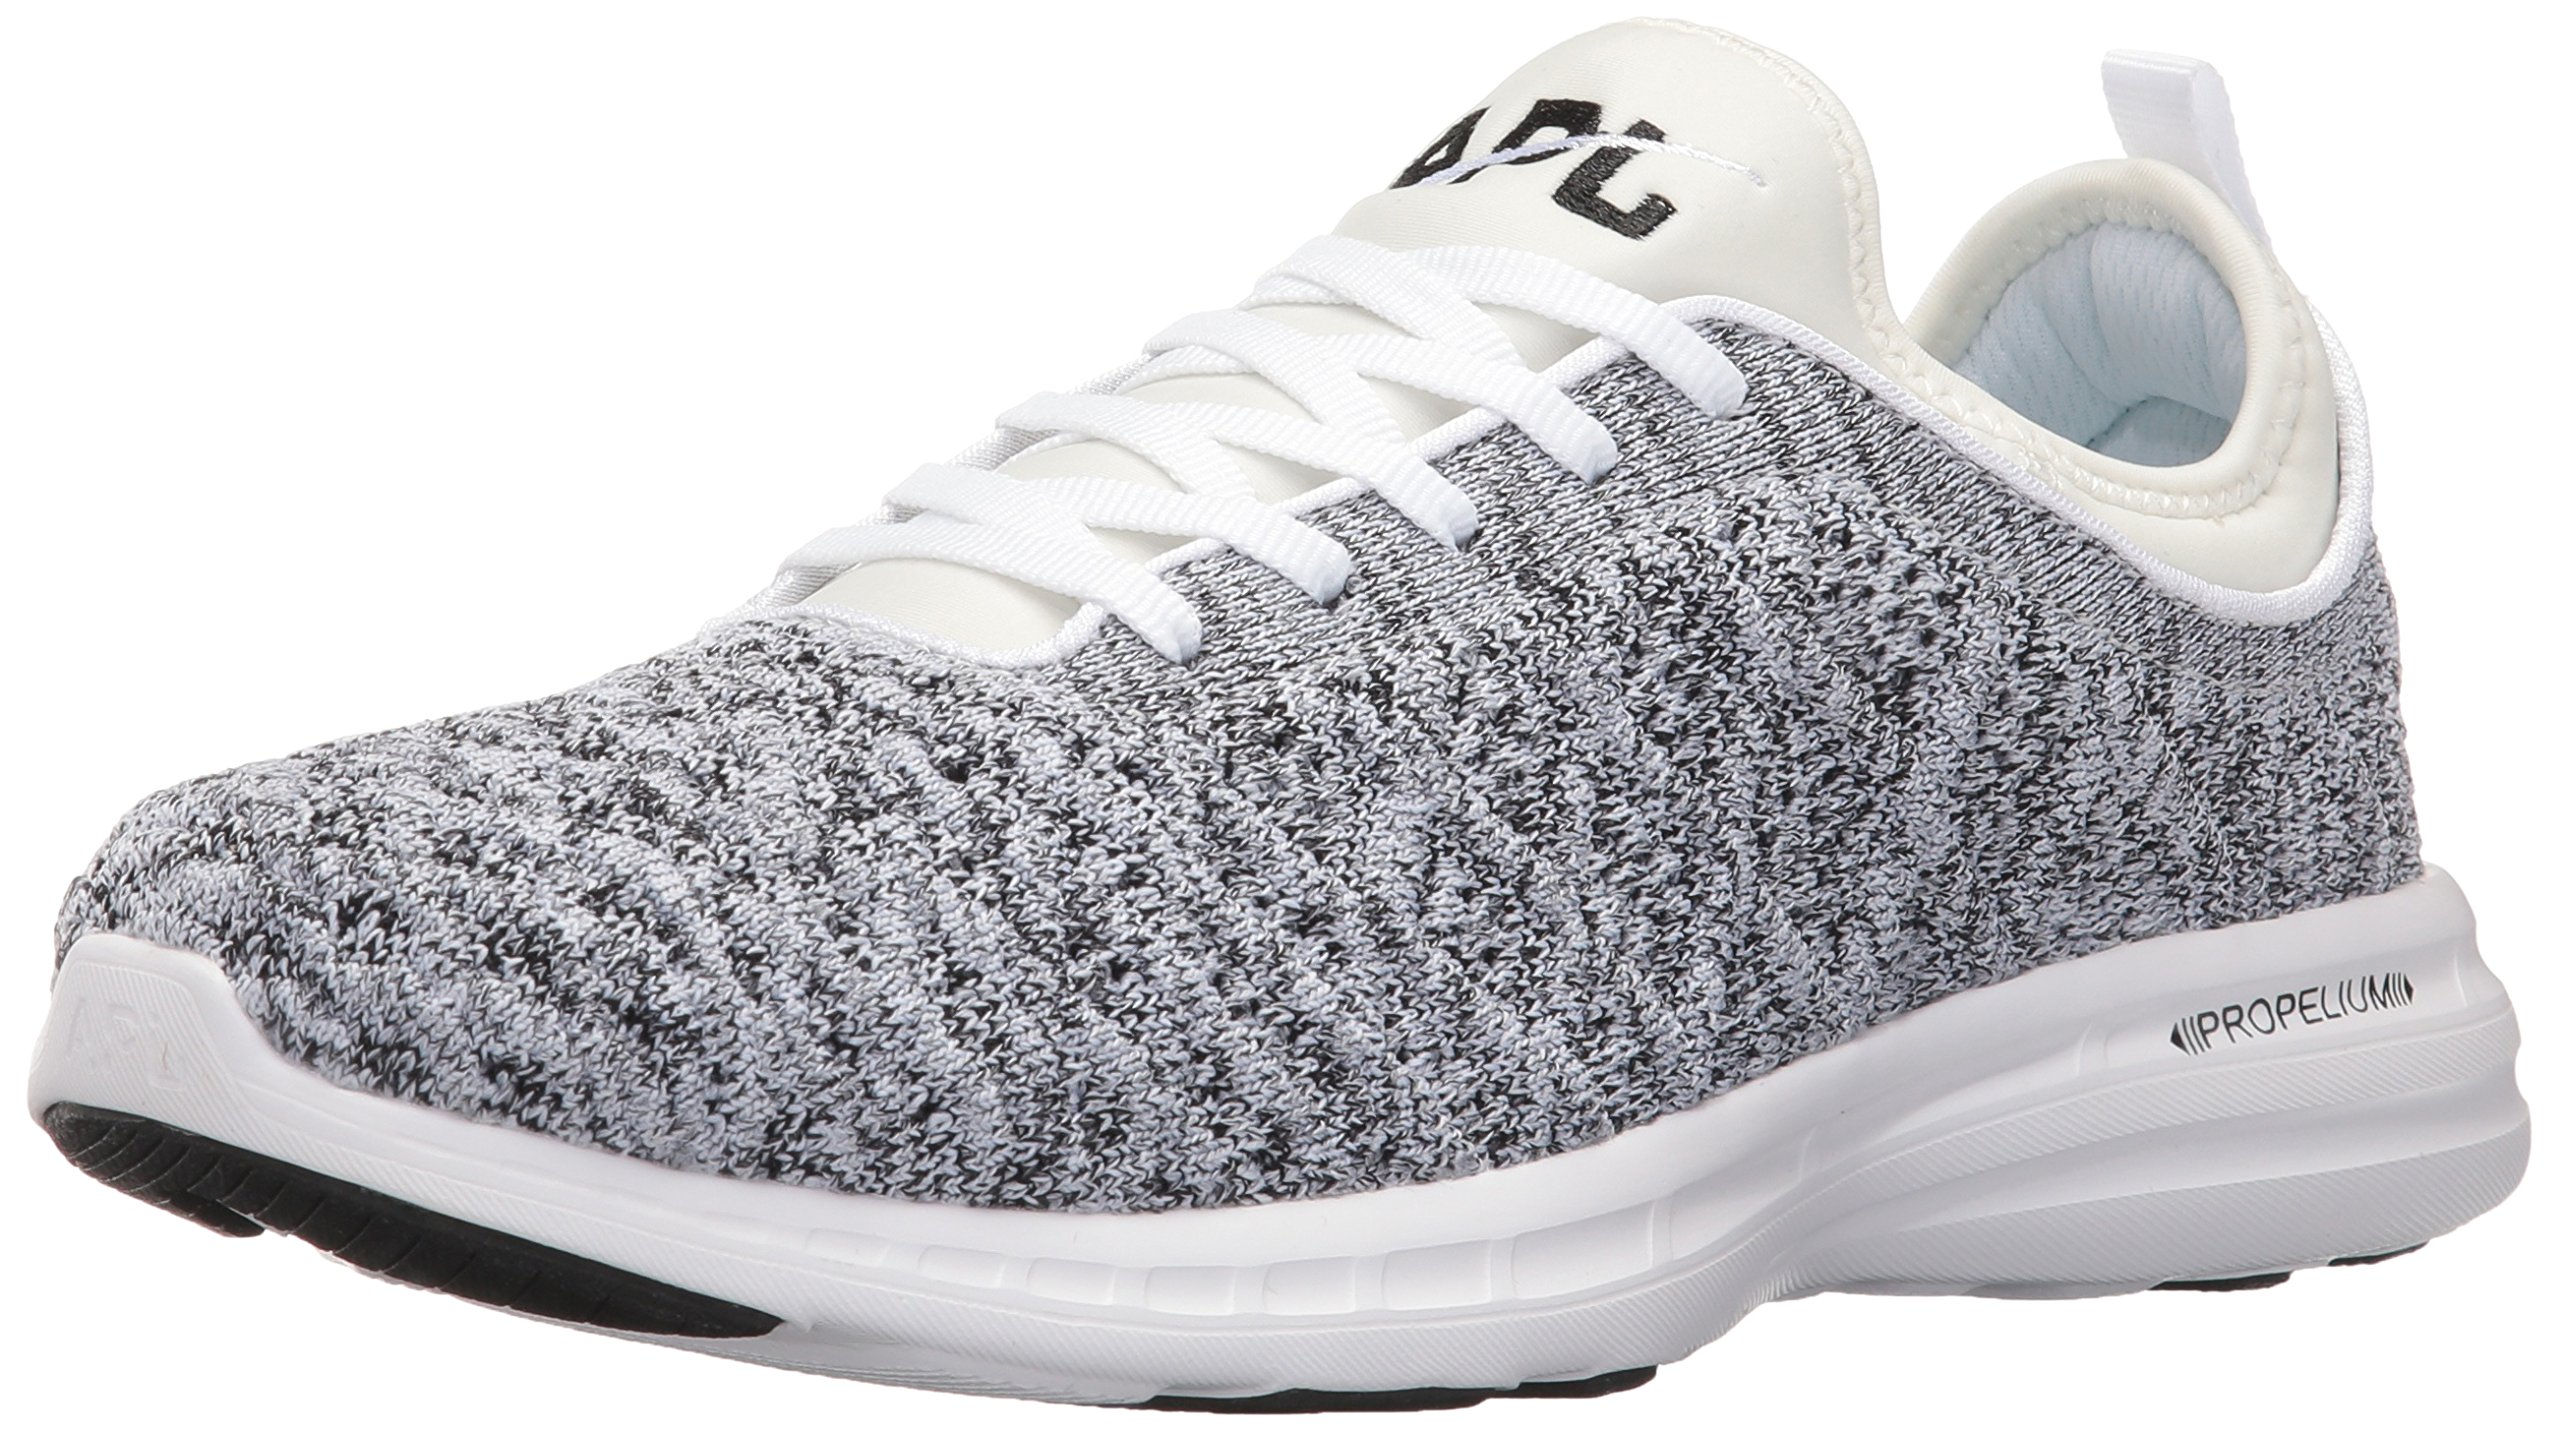 APL: Athletic Propulsion Labs Women's Techloom Phantom Running Shoe, White/Cosmic Grey, 10.5 M US